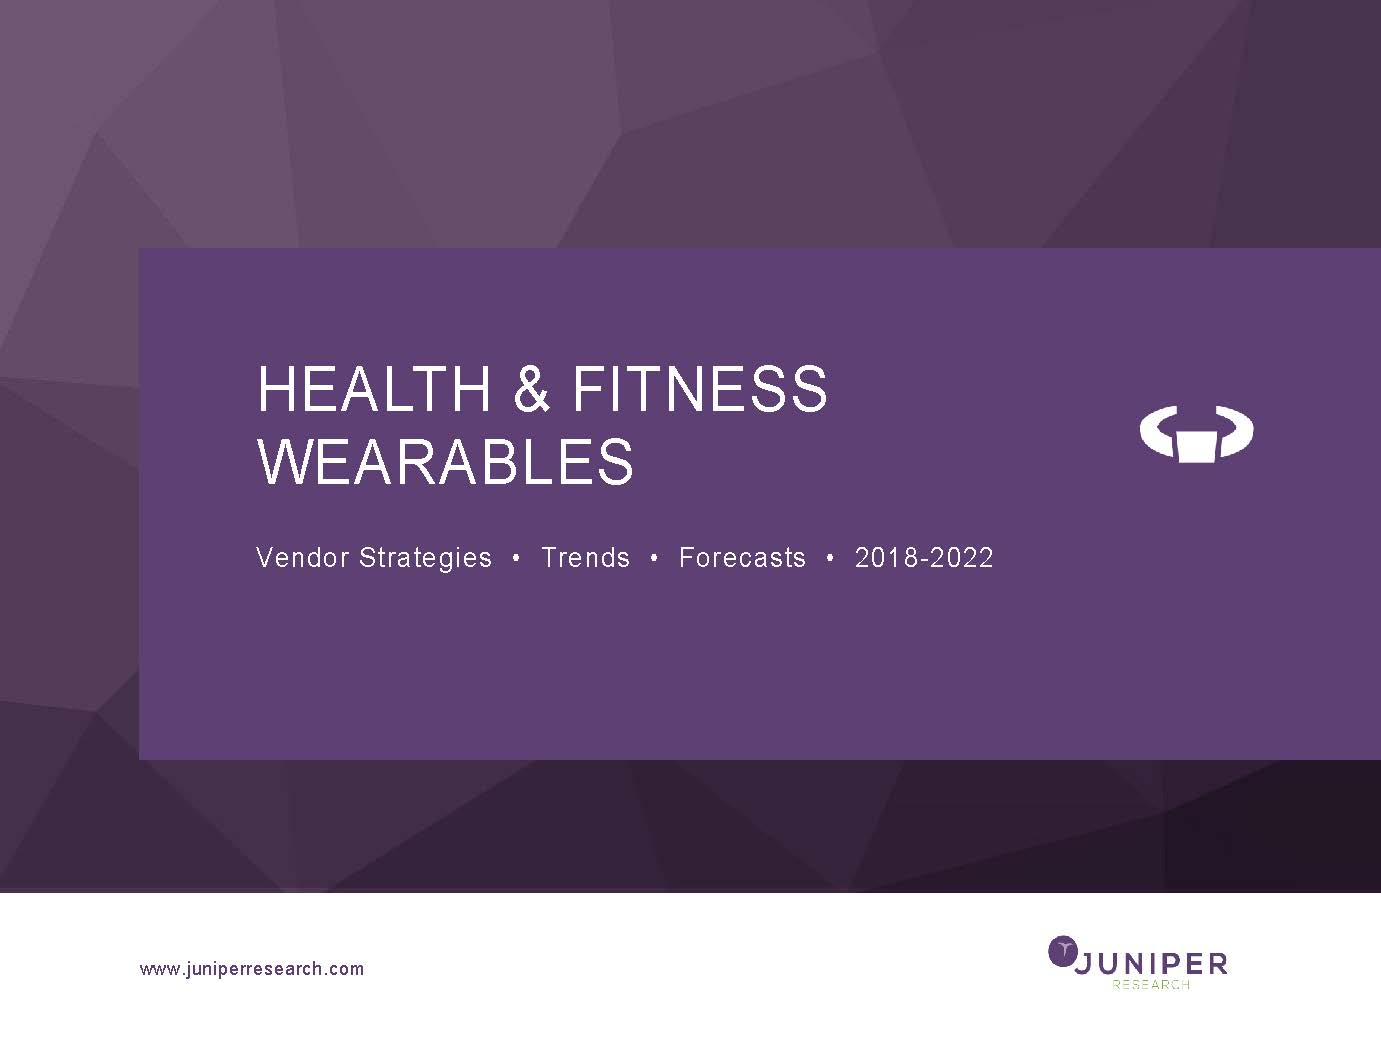 Health & Fitness Wearables: Vendor Strategies, Trends & Forecasts - 2018-2022 Full Research Suite